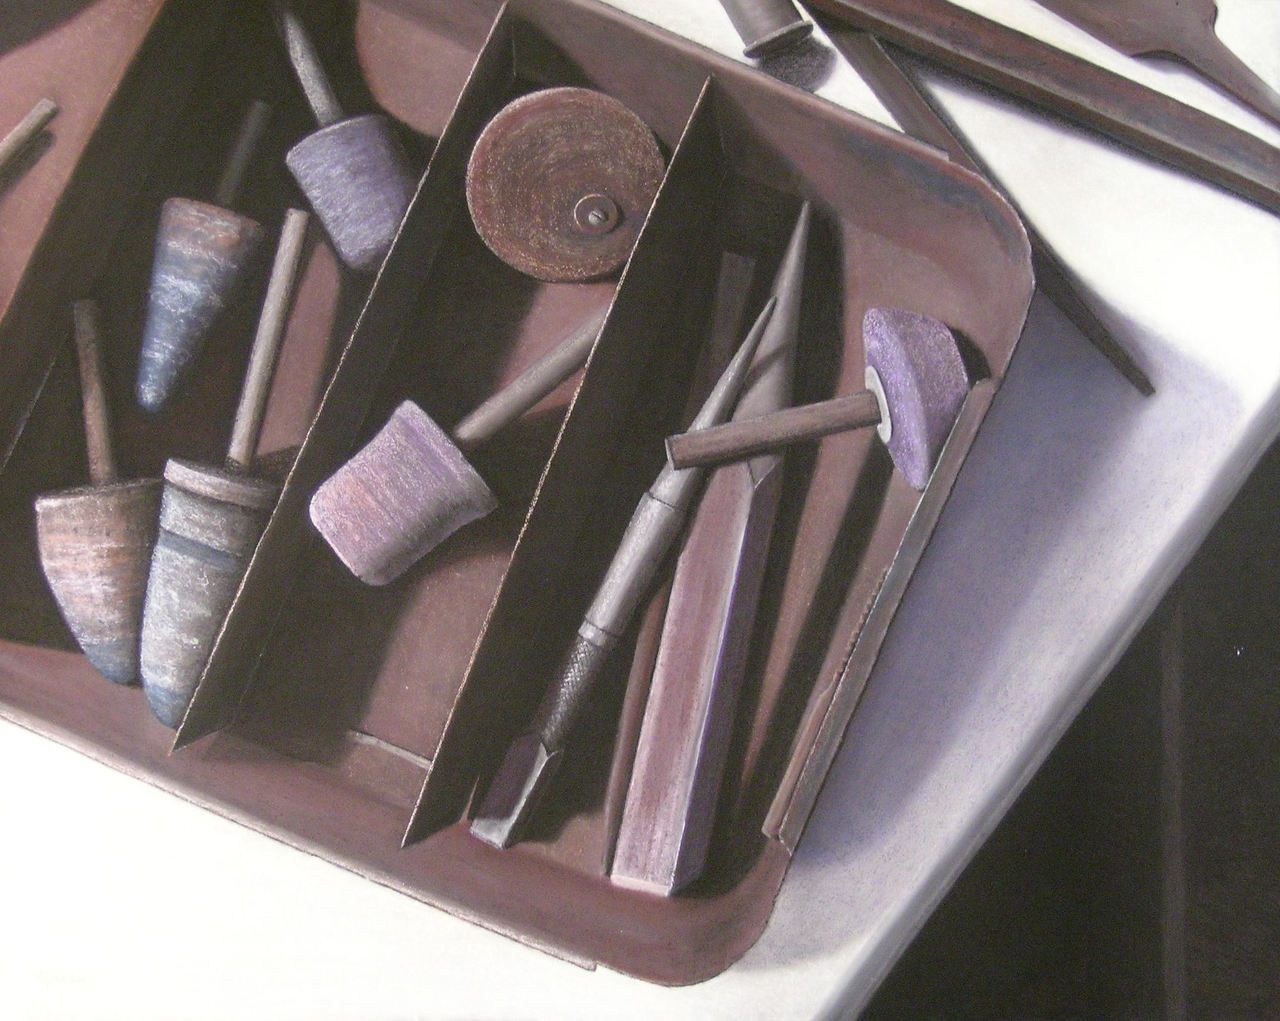 Tools and Tray, 2006